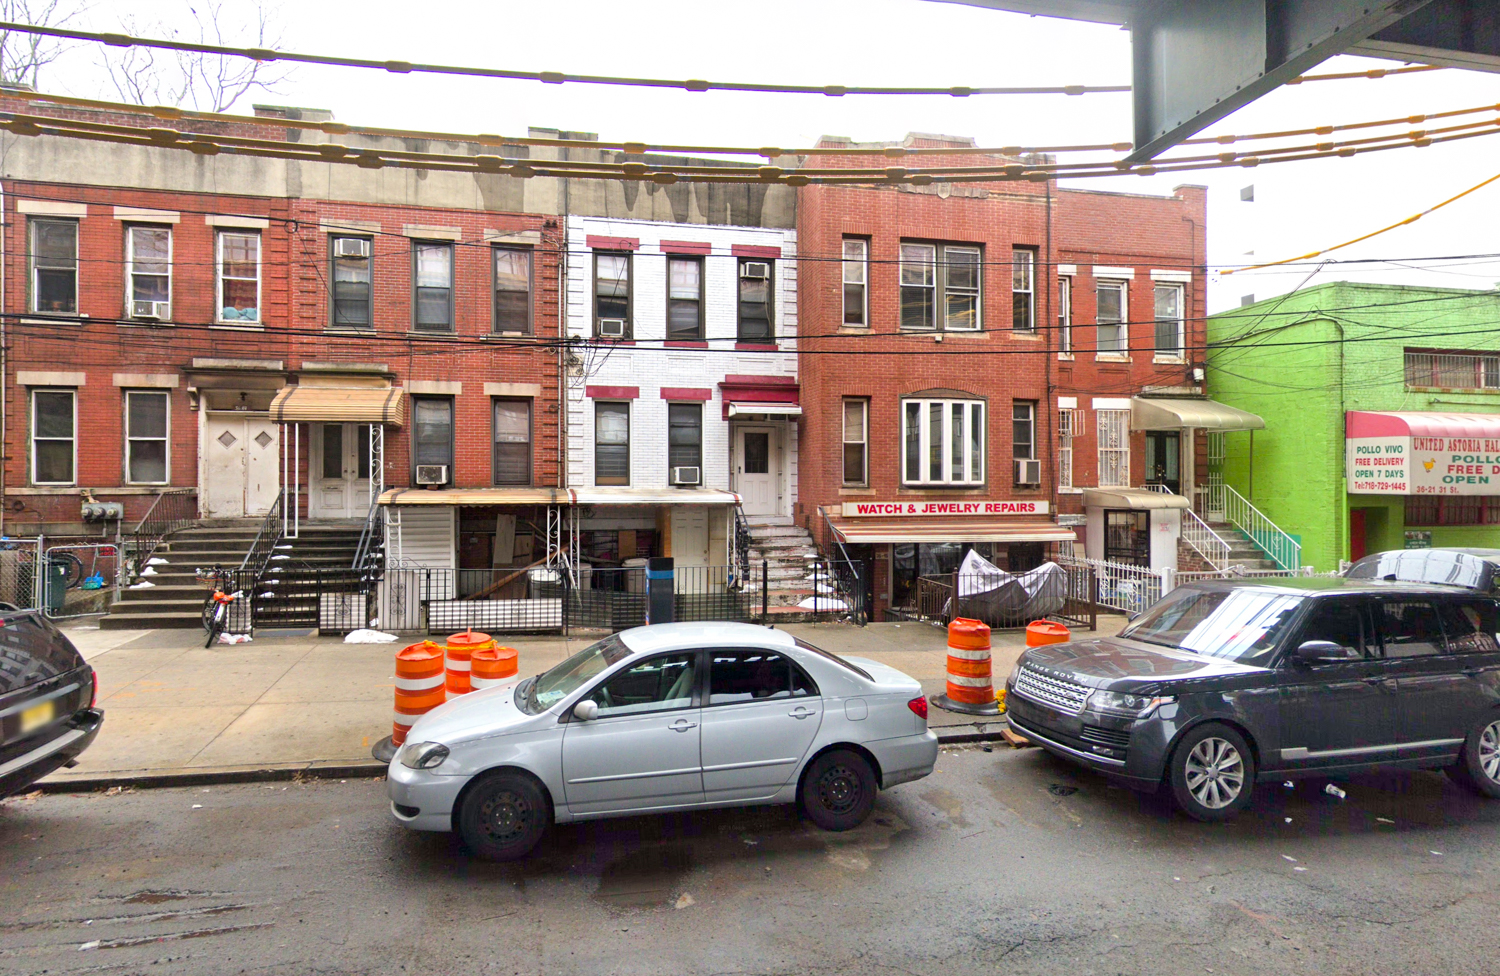 36-11 31st Street, via Google Maps